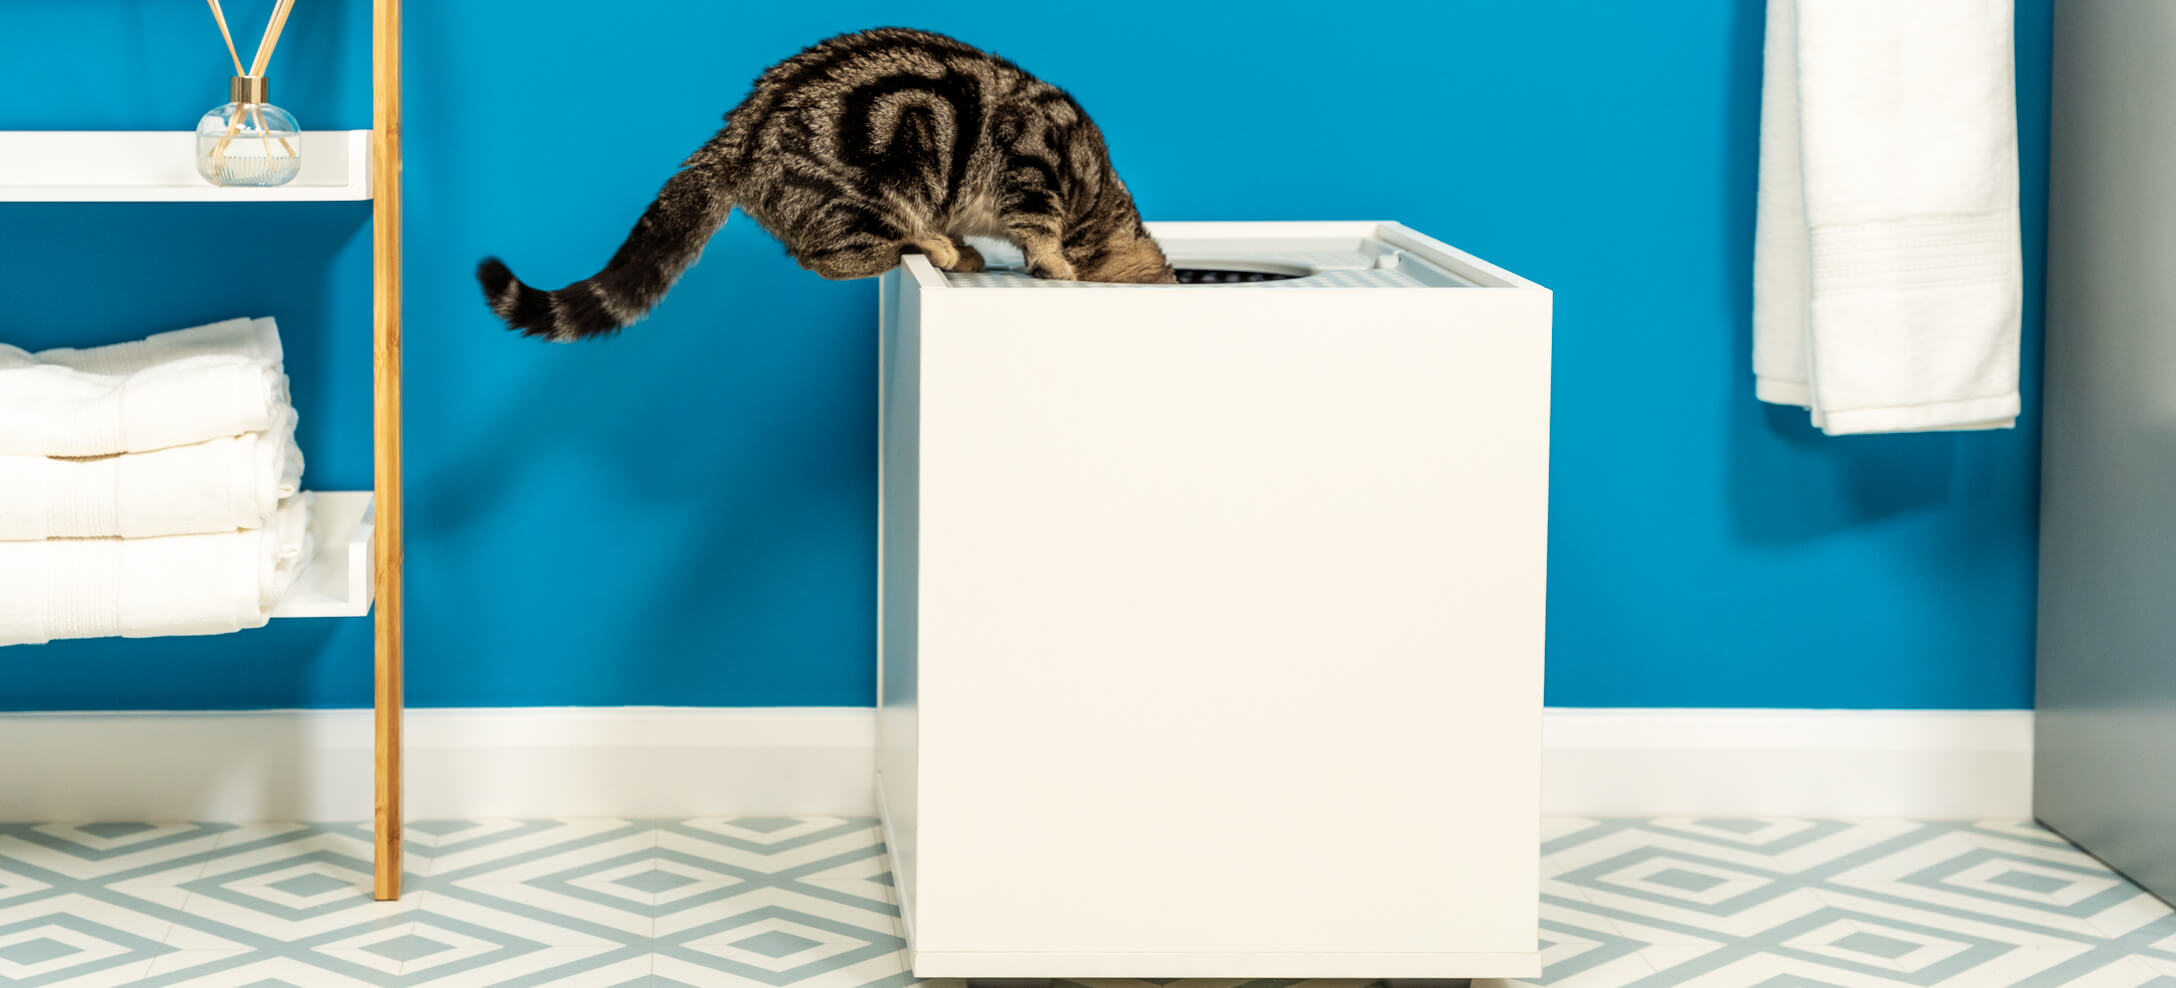 A tabby cat looking into a white litter box